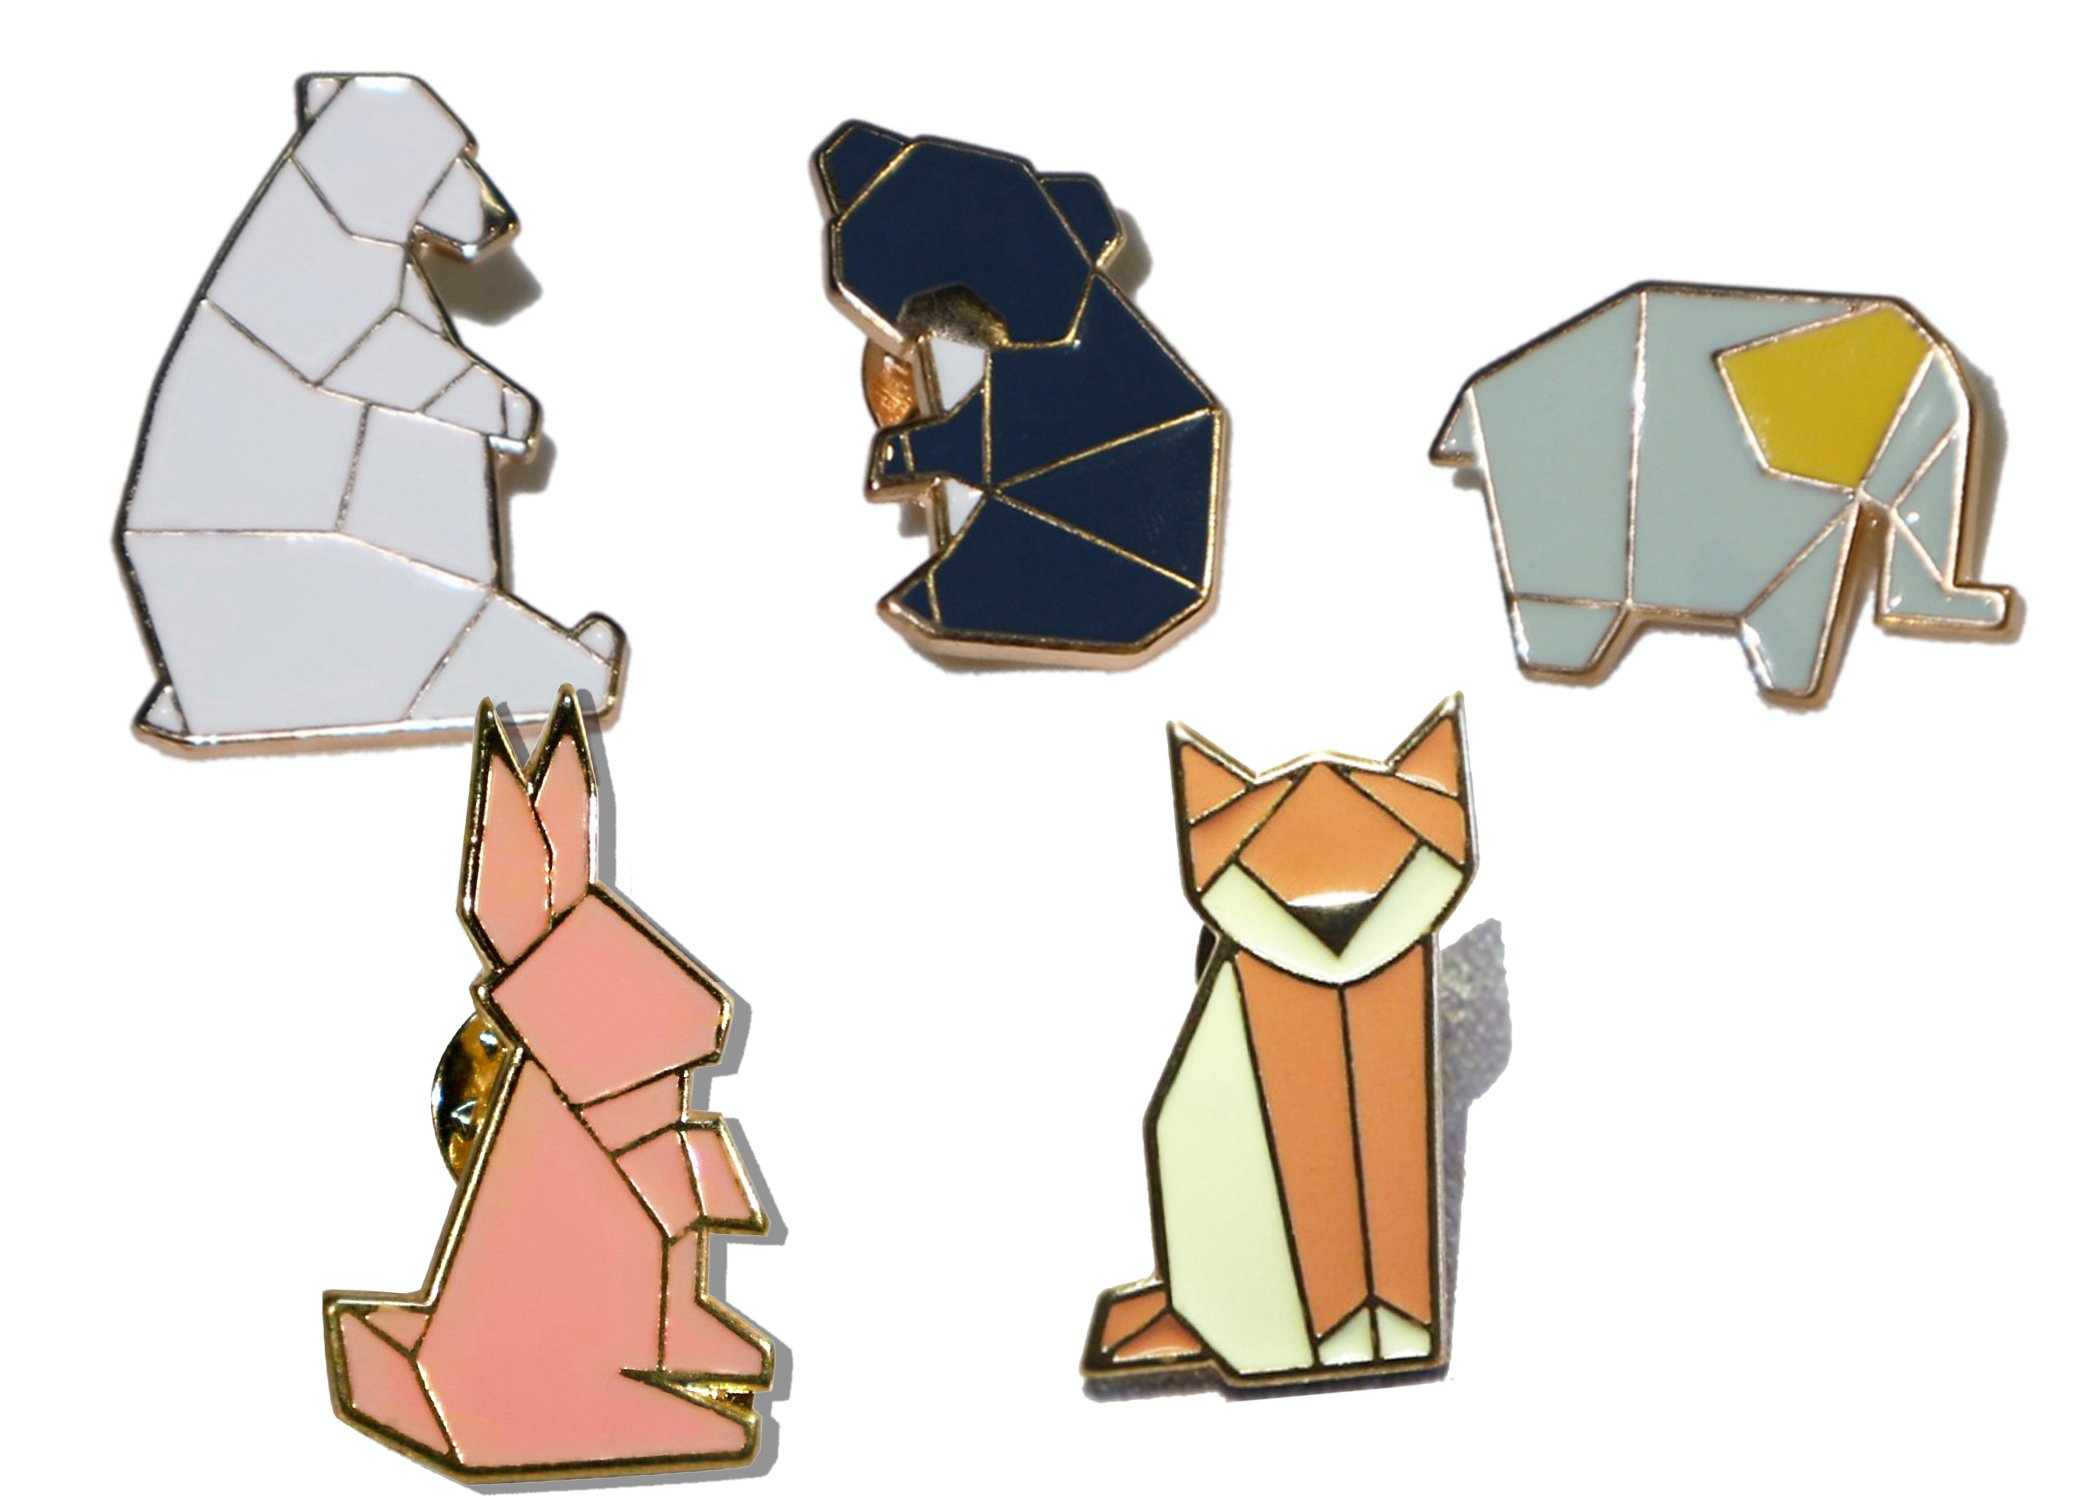 Liveinu Fashion Geometric Cartoon Animals Enamel Brooches Pins Set Cute Brooches Pins for Clothes Bags Brooches for Wedding Lapel Pins